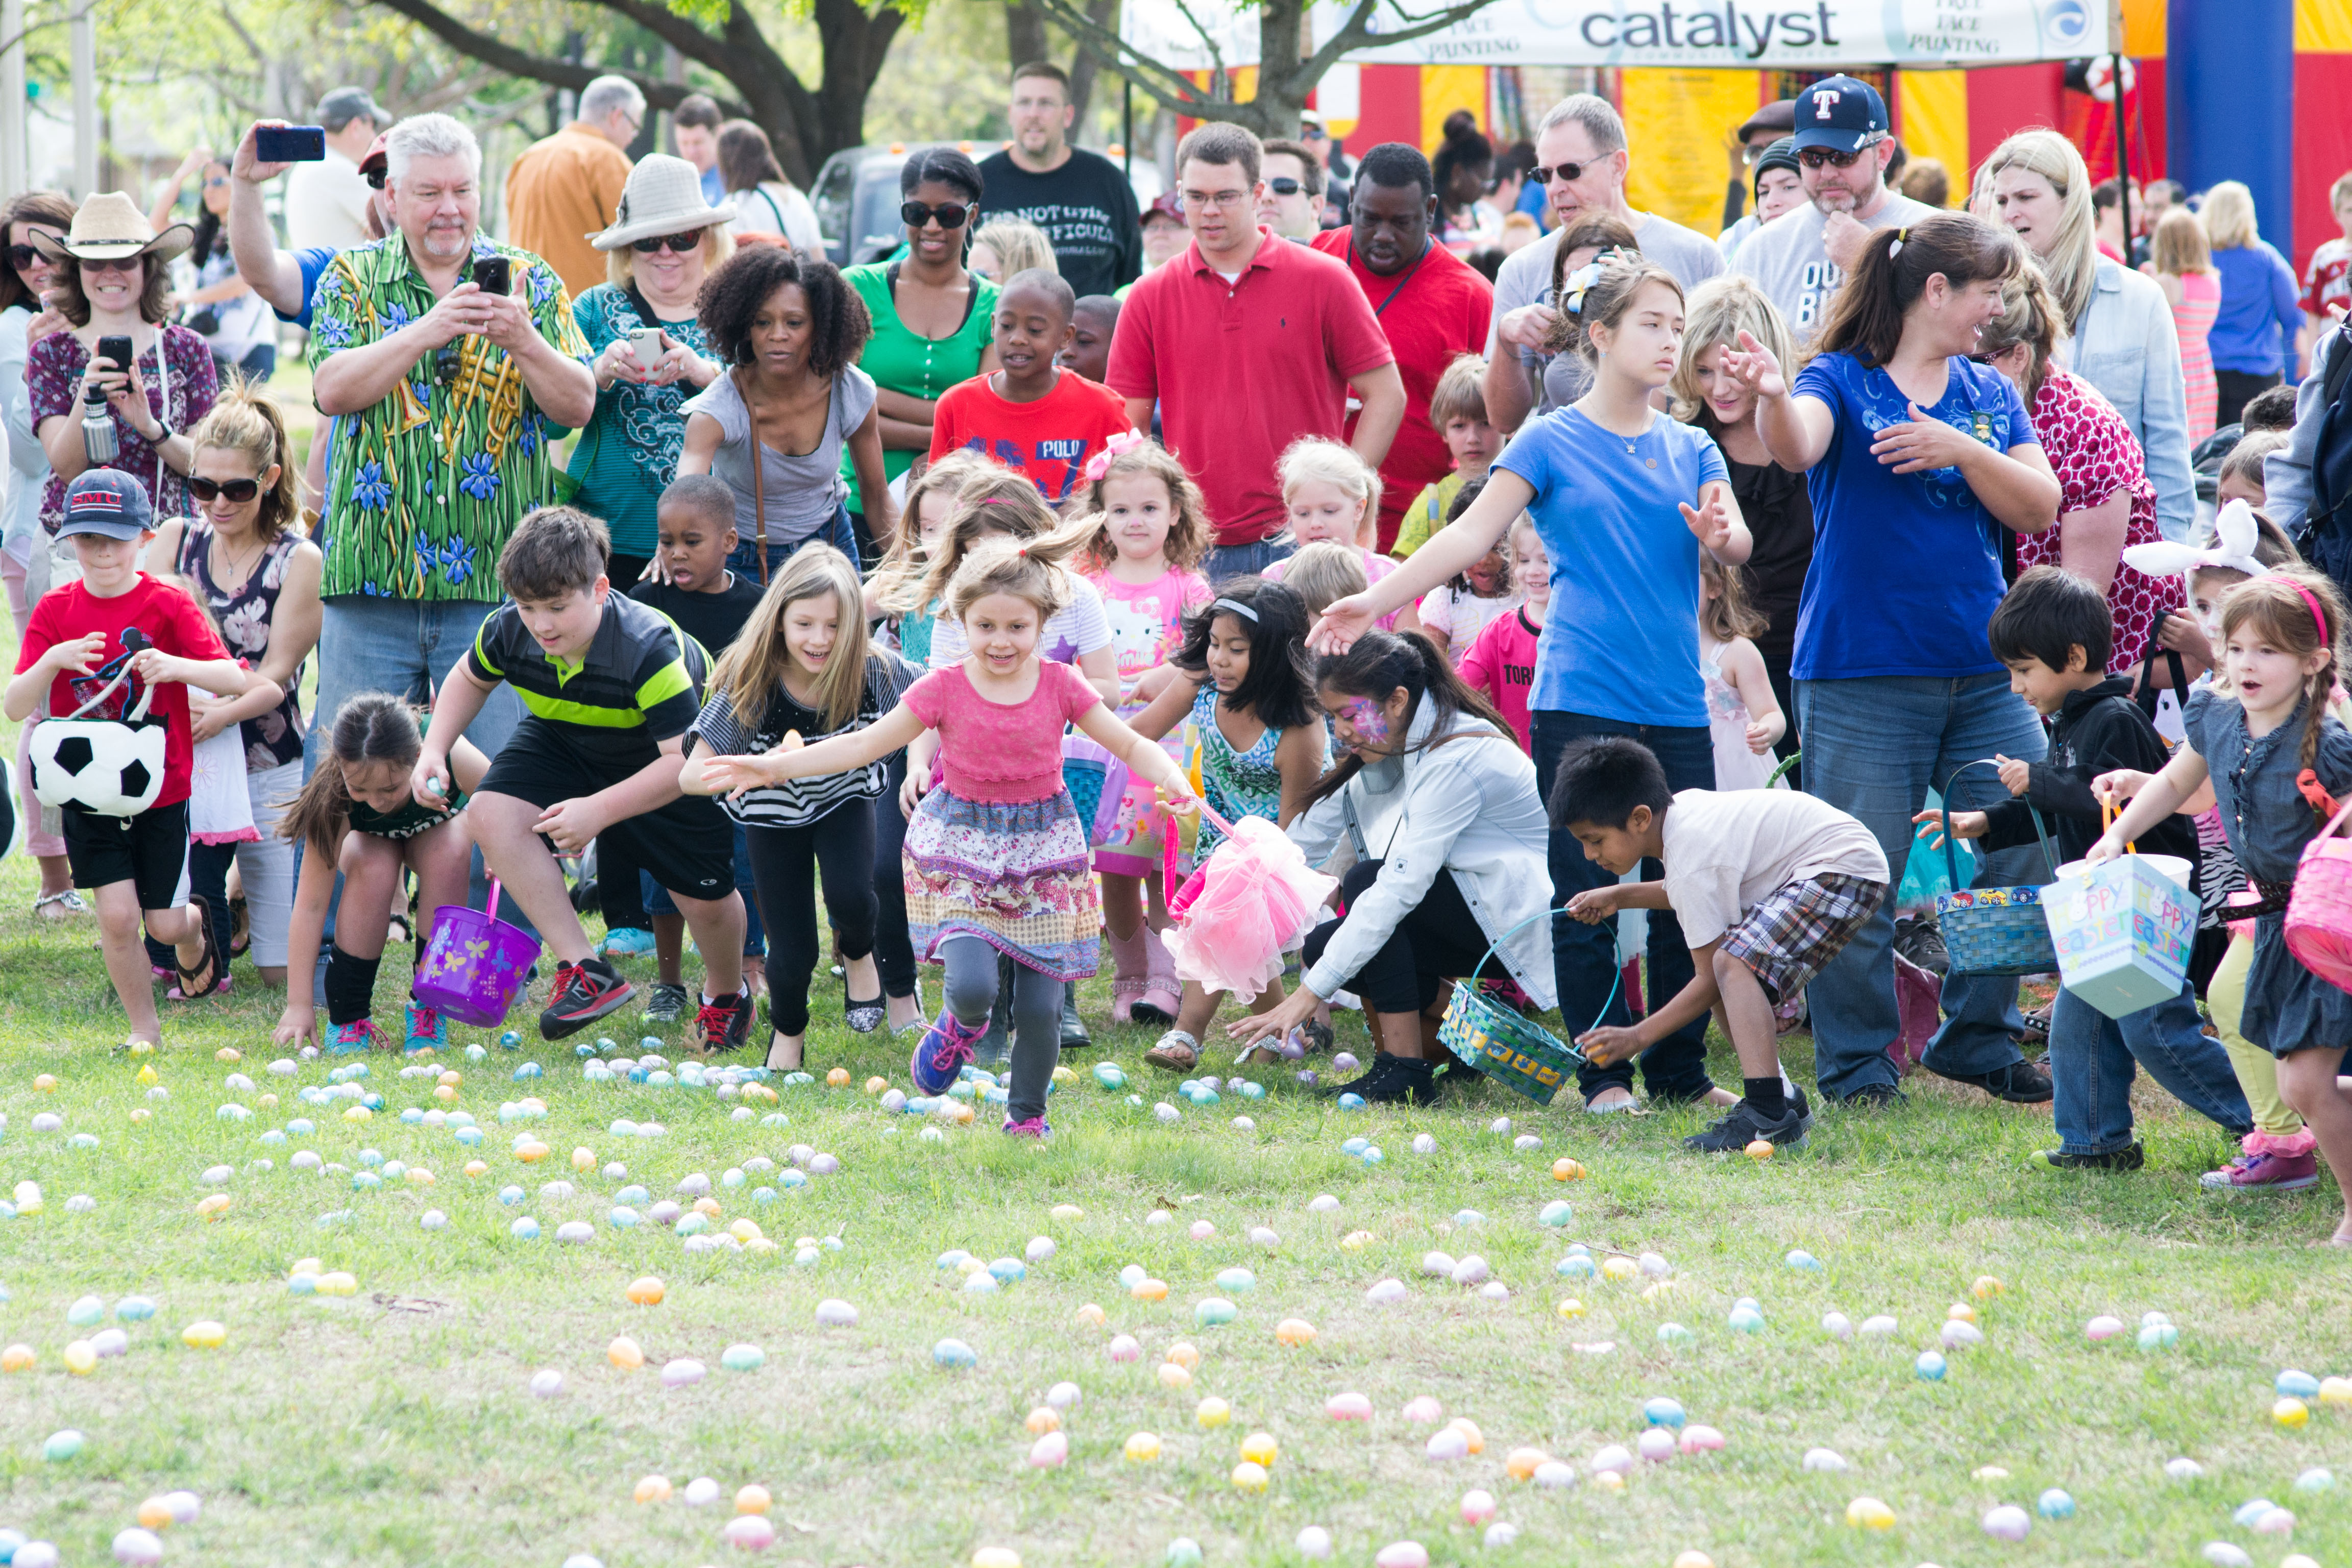 Image of a large group of children doing an Easter egg hunt